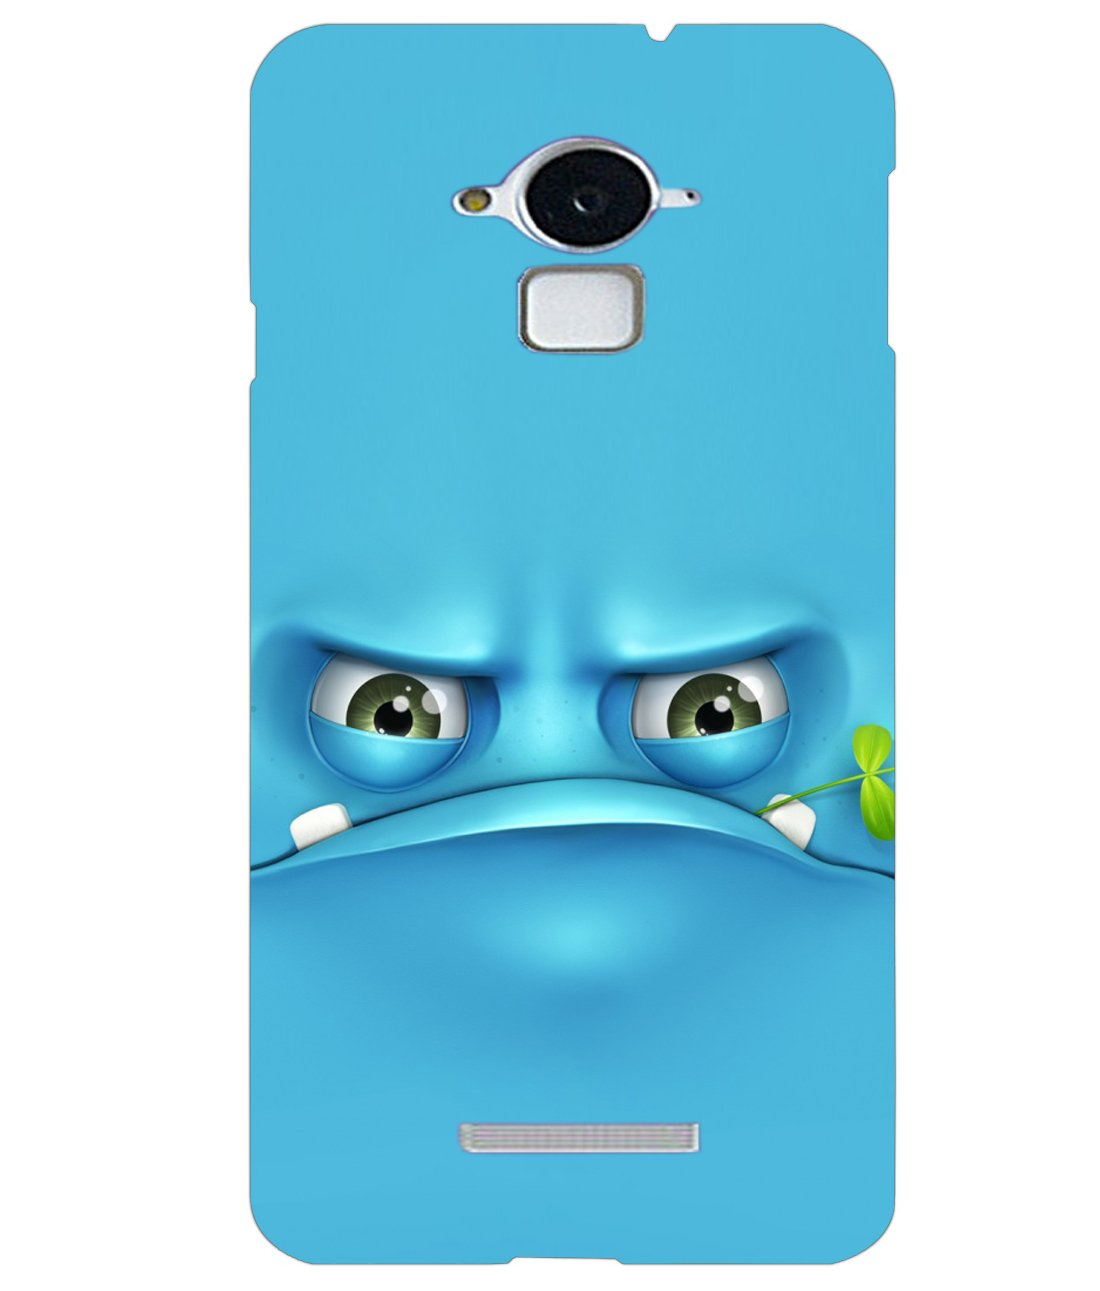 Csk Funny Wallpapers Mobile Case Cover For Cool Pad Amazon